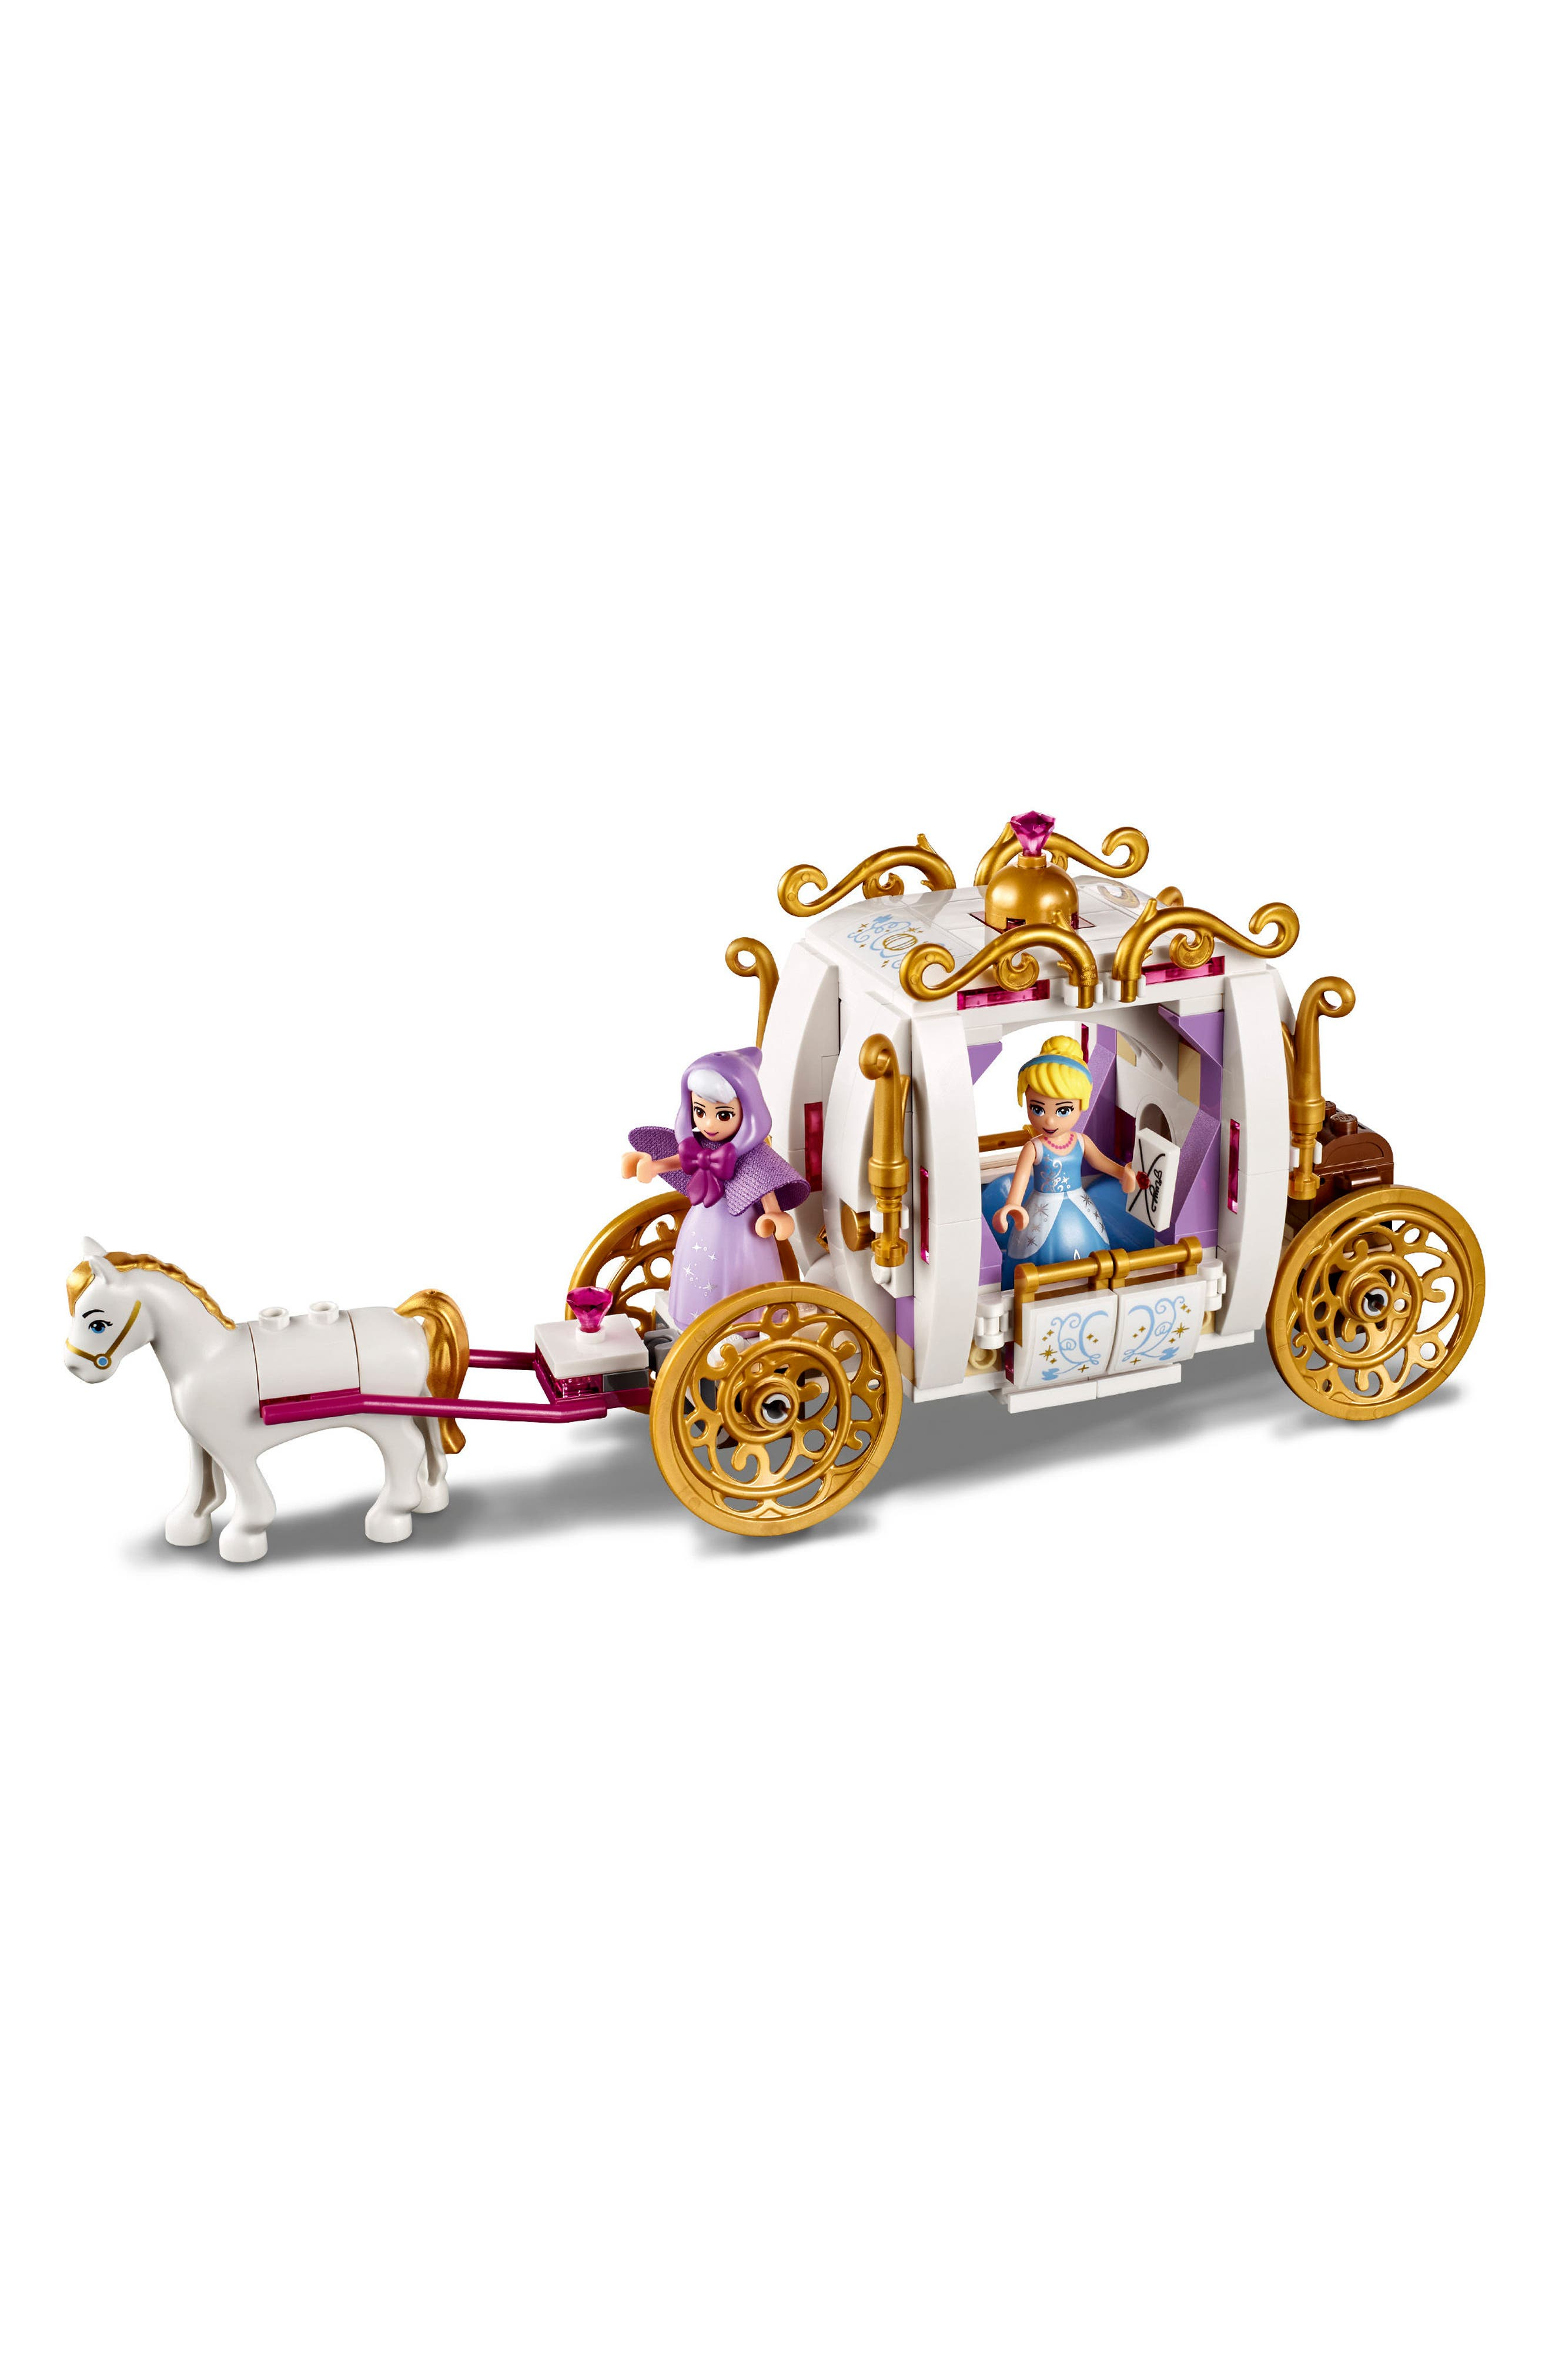 Disney<sup>™</sup> Cinderella's Enchanted Evening Play Set - 41146,                             Alternate thumbnail 3, color,                             100